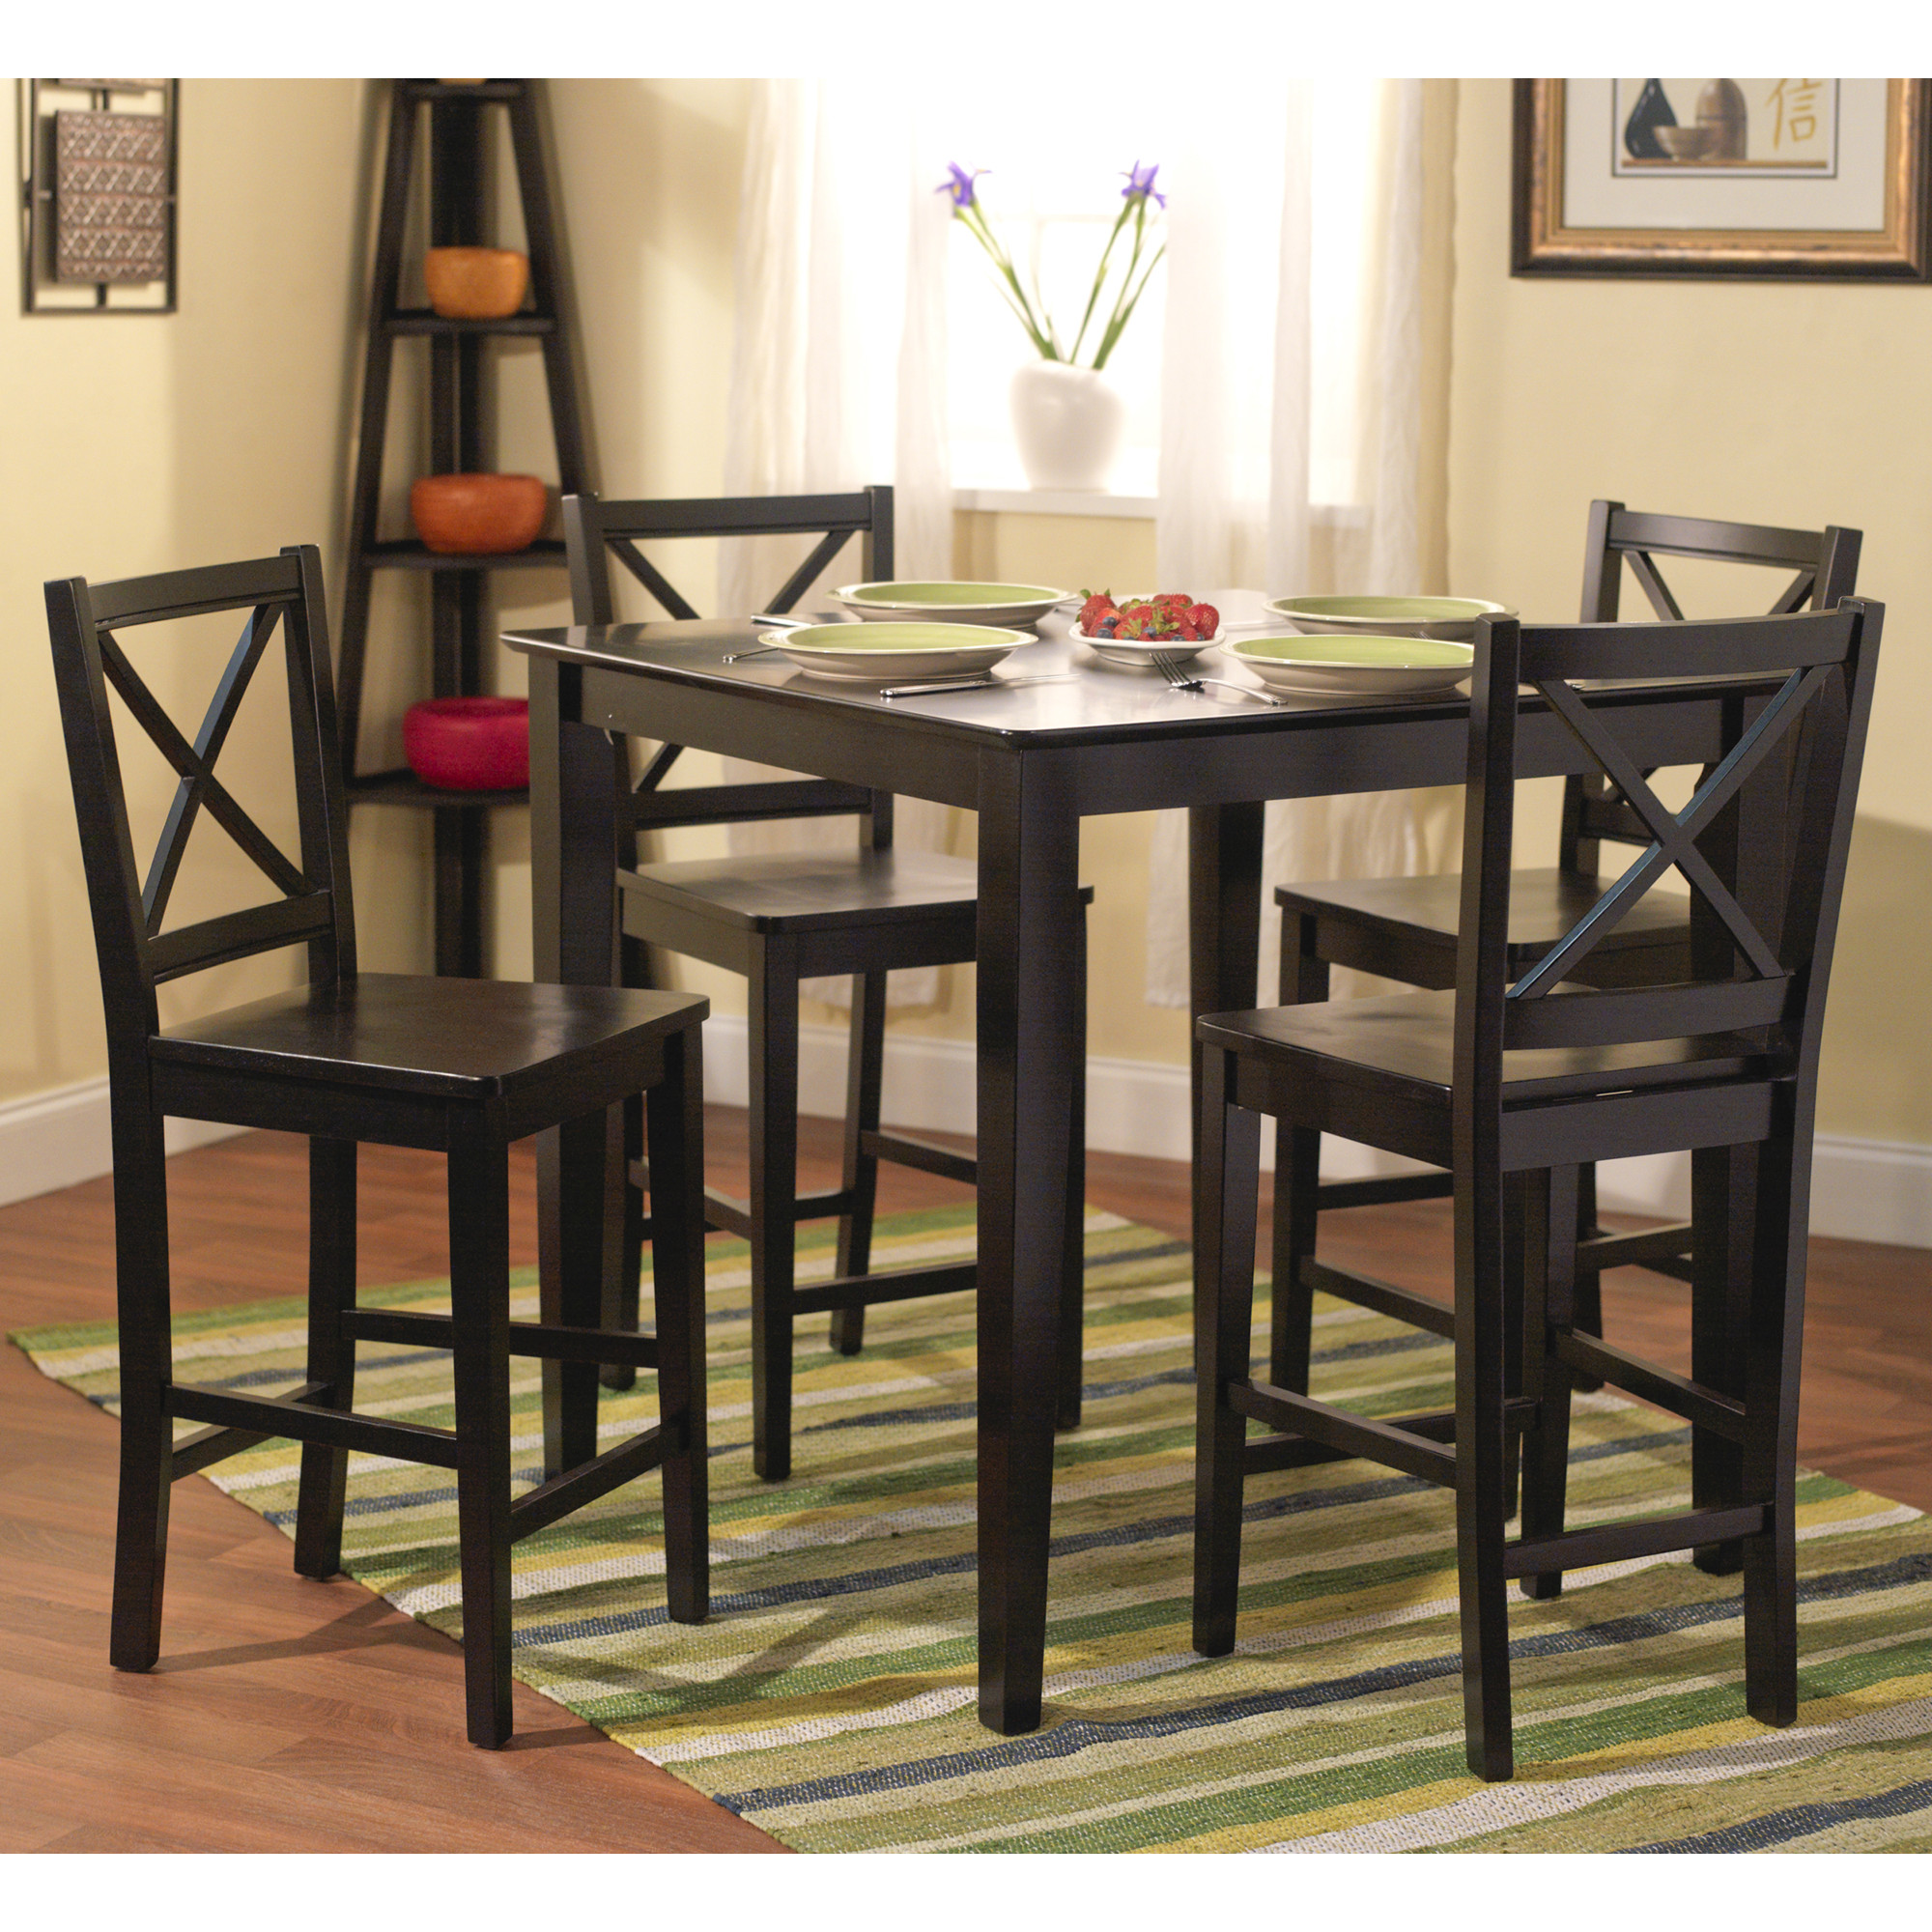 Compact Worthington 5 Piece Counter Height Dining Set tall dining room table and chairs